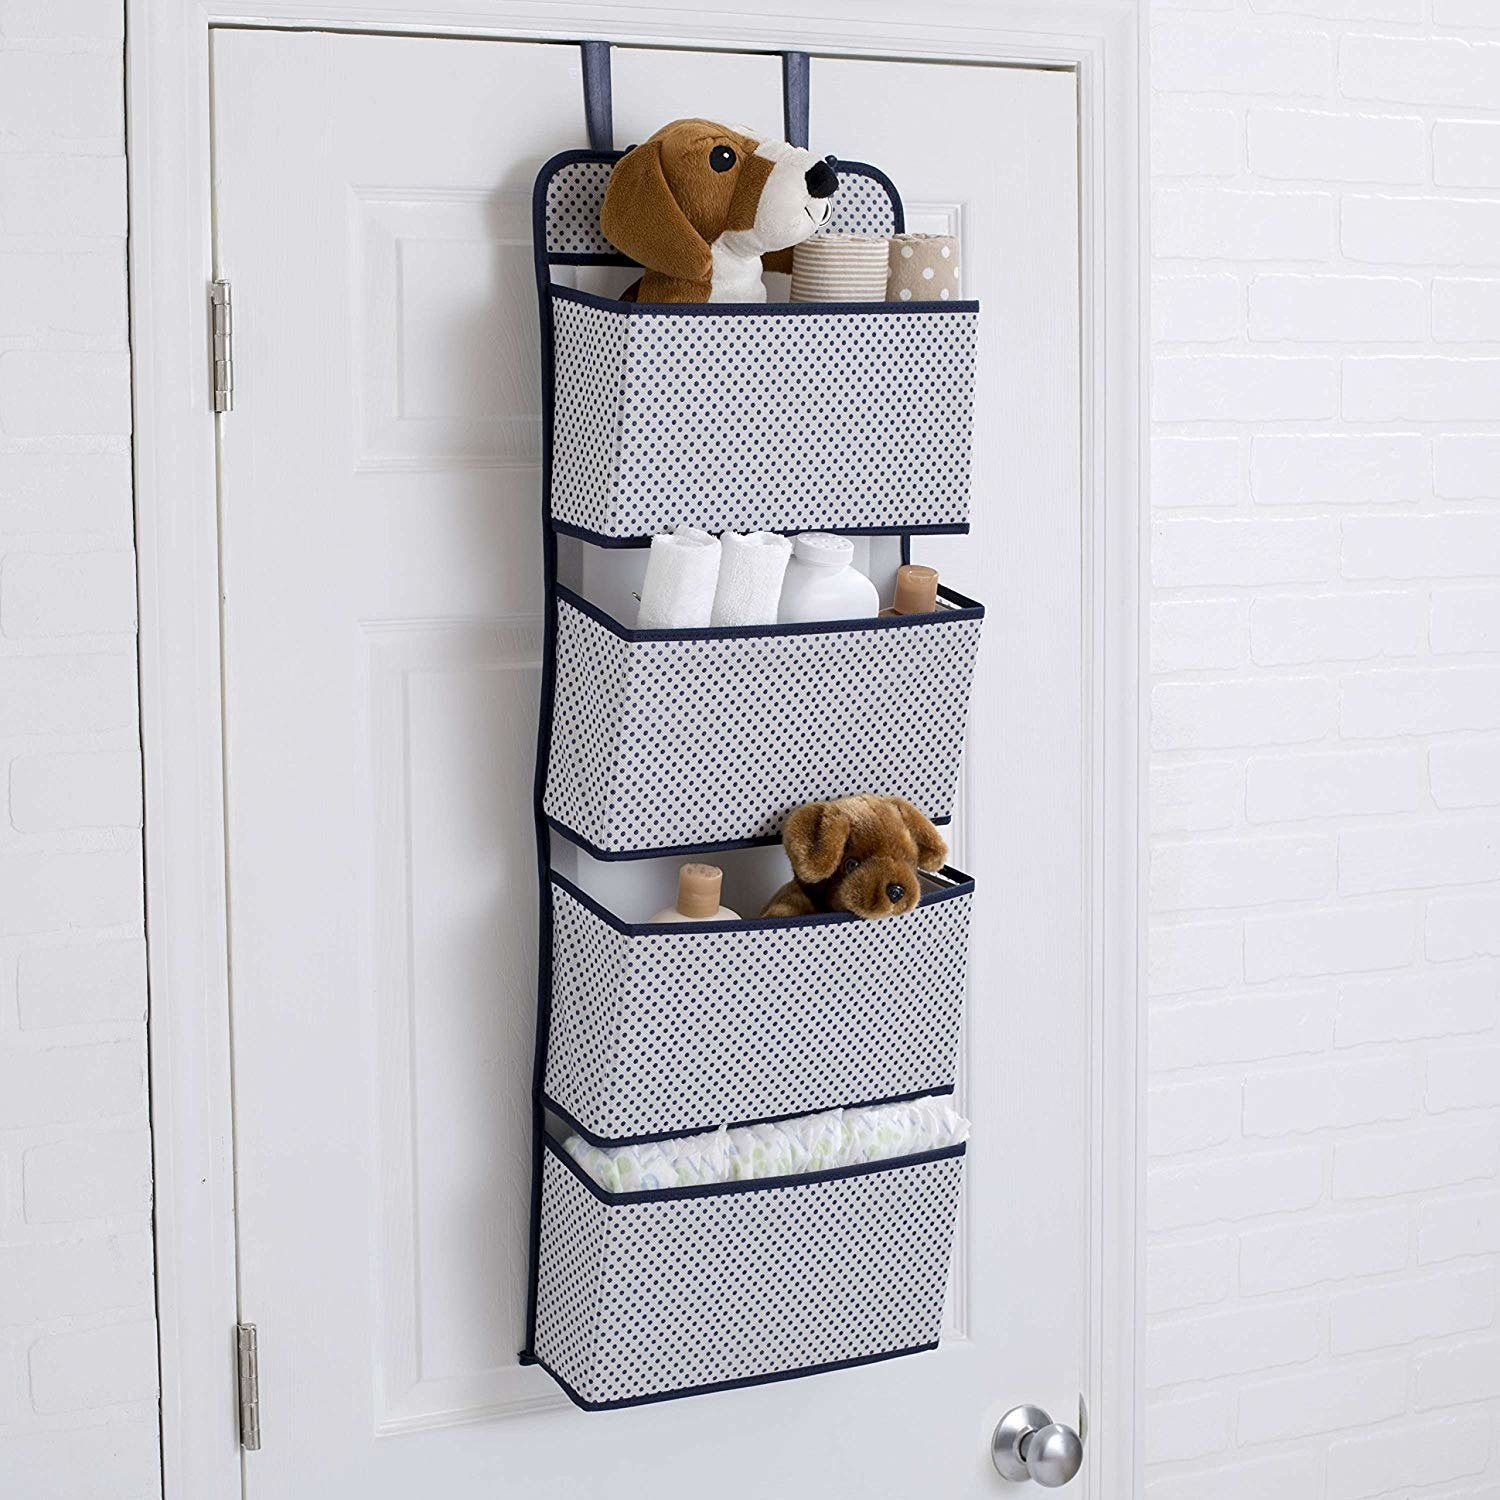 A black and white over-the-door organiser with tiny polka dots.